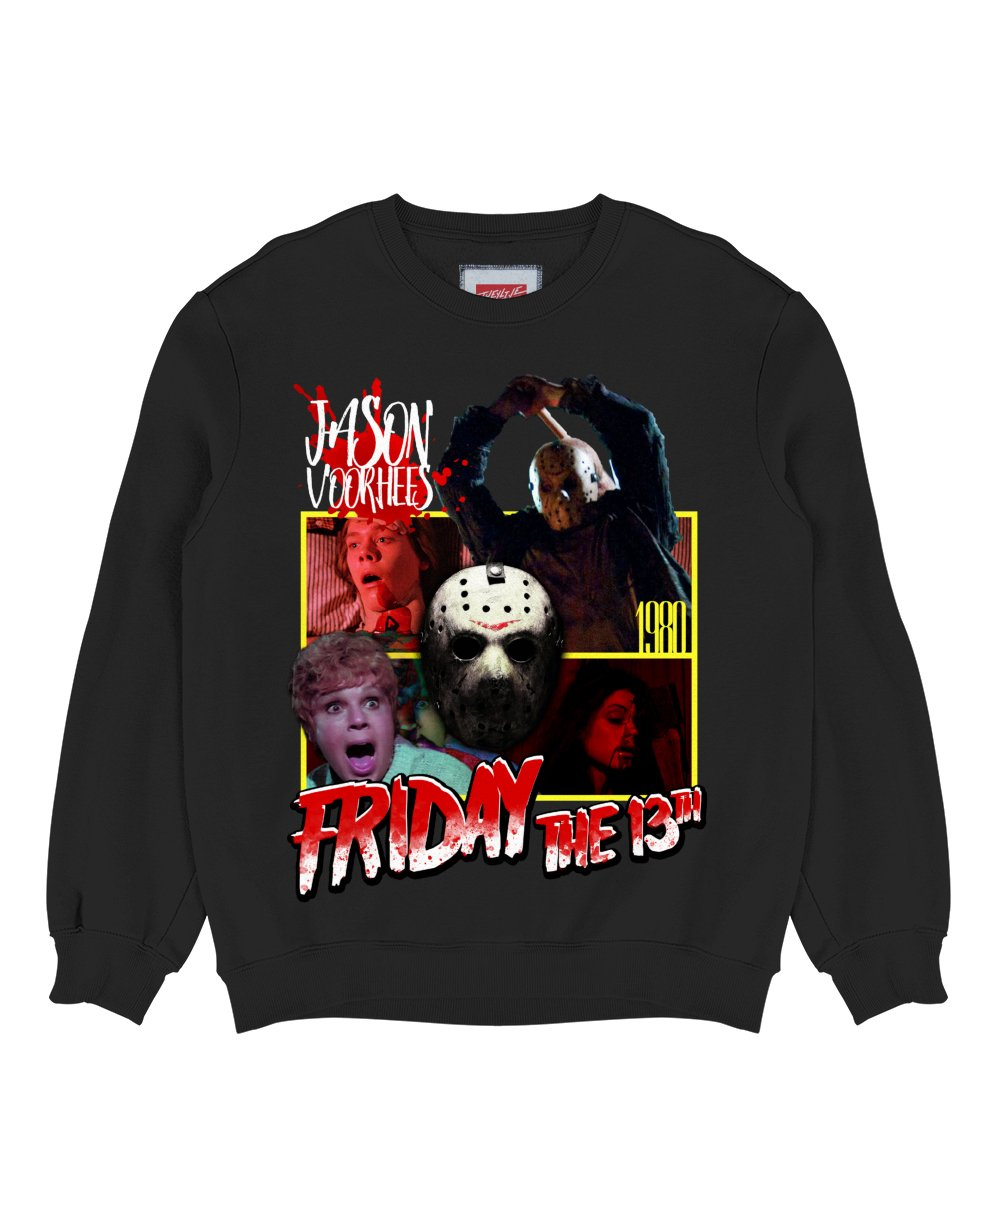 Friday The 13th Print Sweatshirt in Black